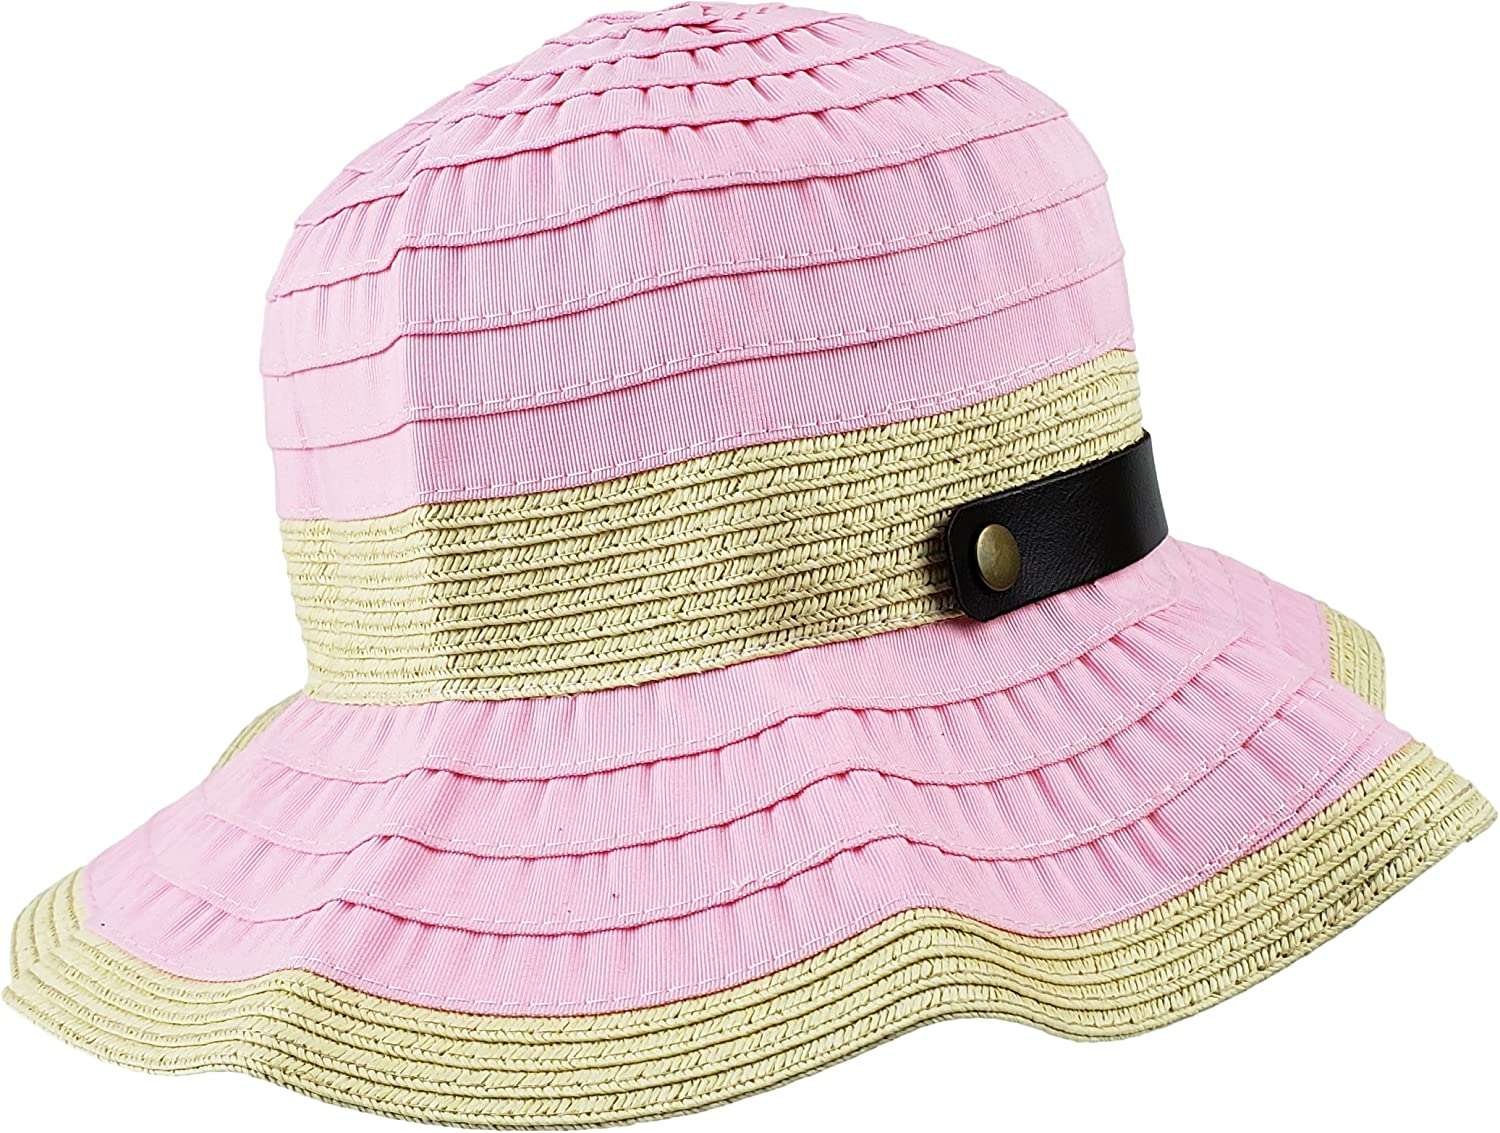 BRUCERIVER Womens Summer Sunhat Packable Wide Brim Hats with Buckle Strap Pink